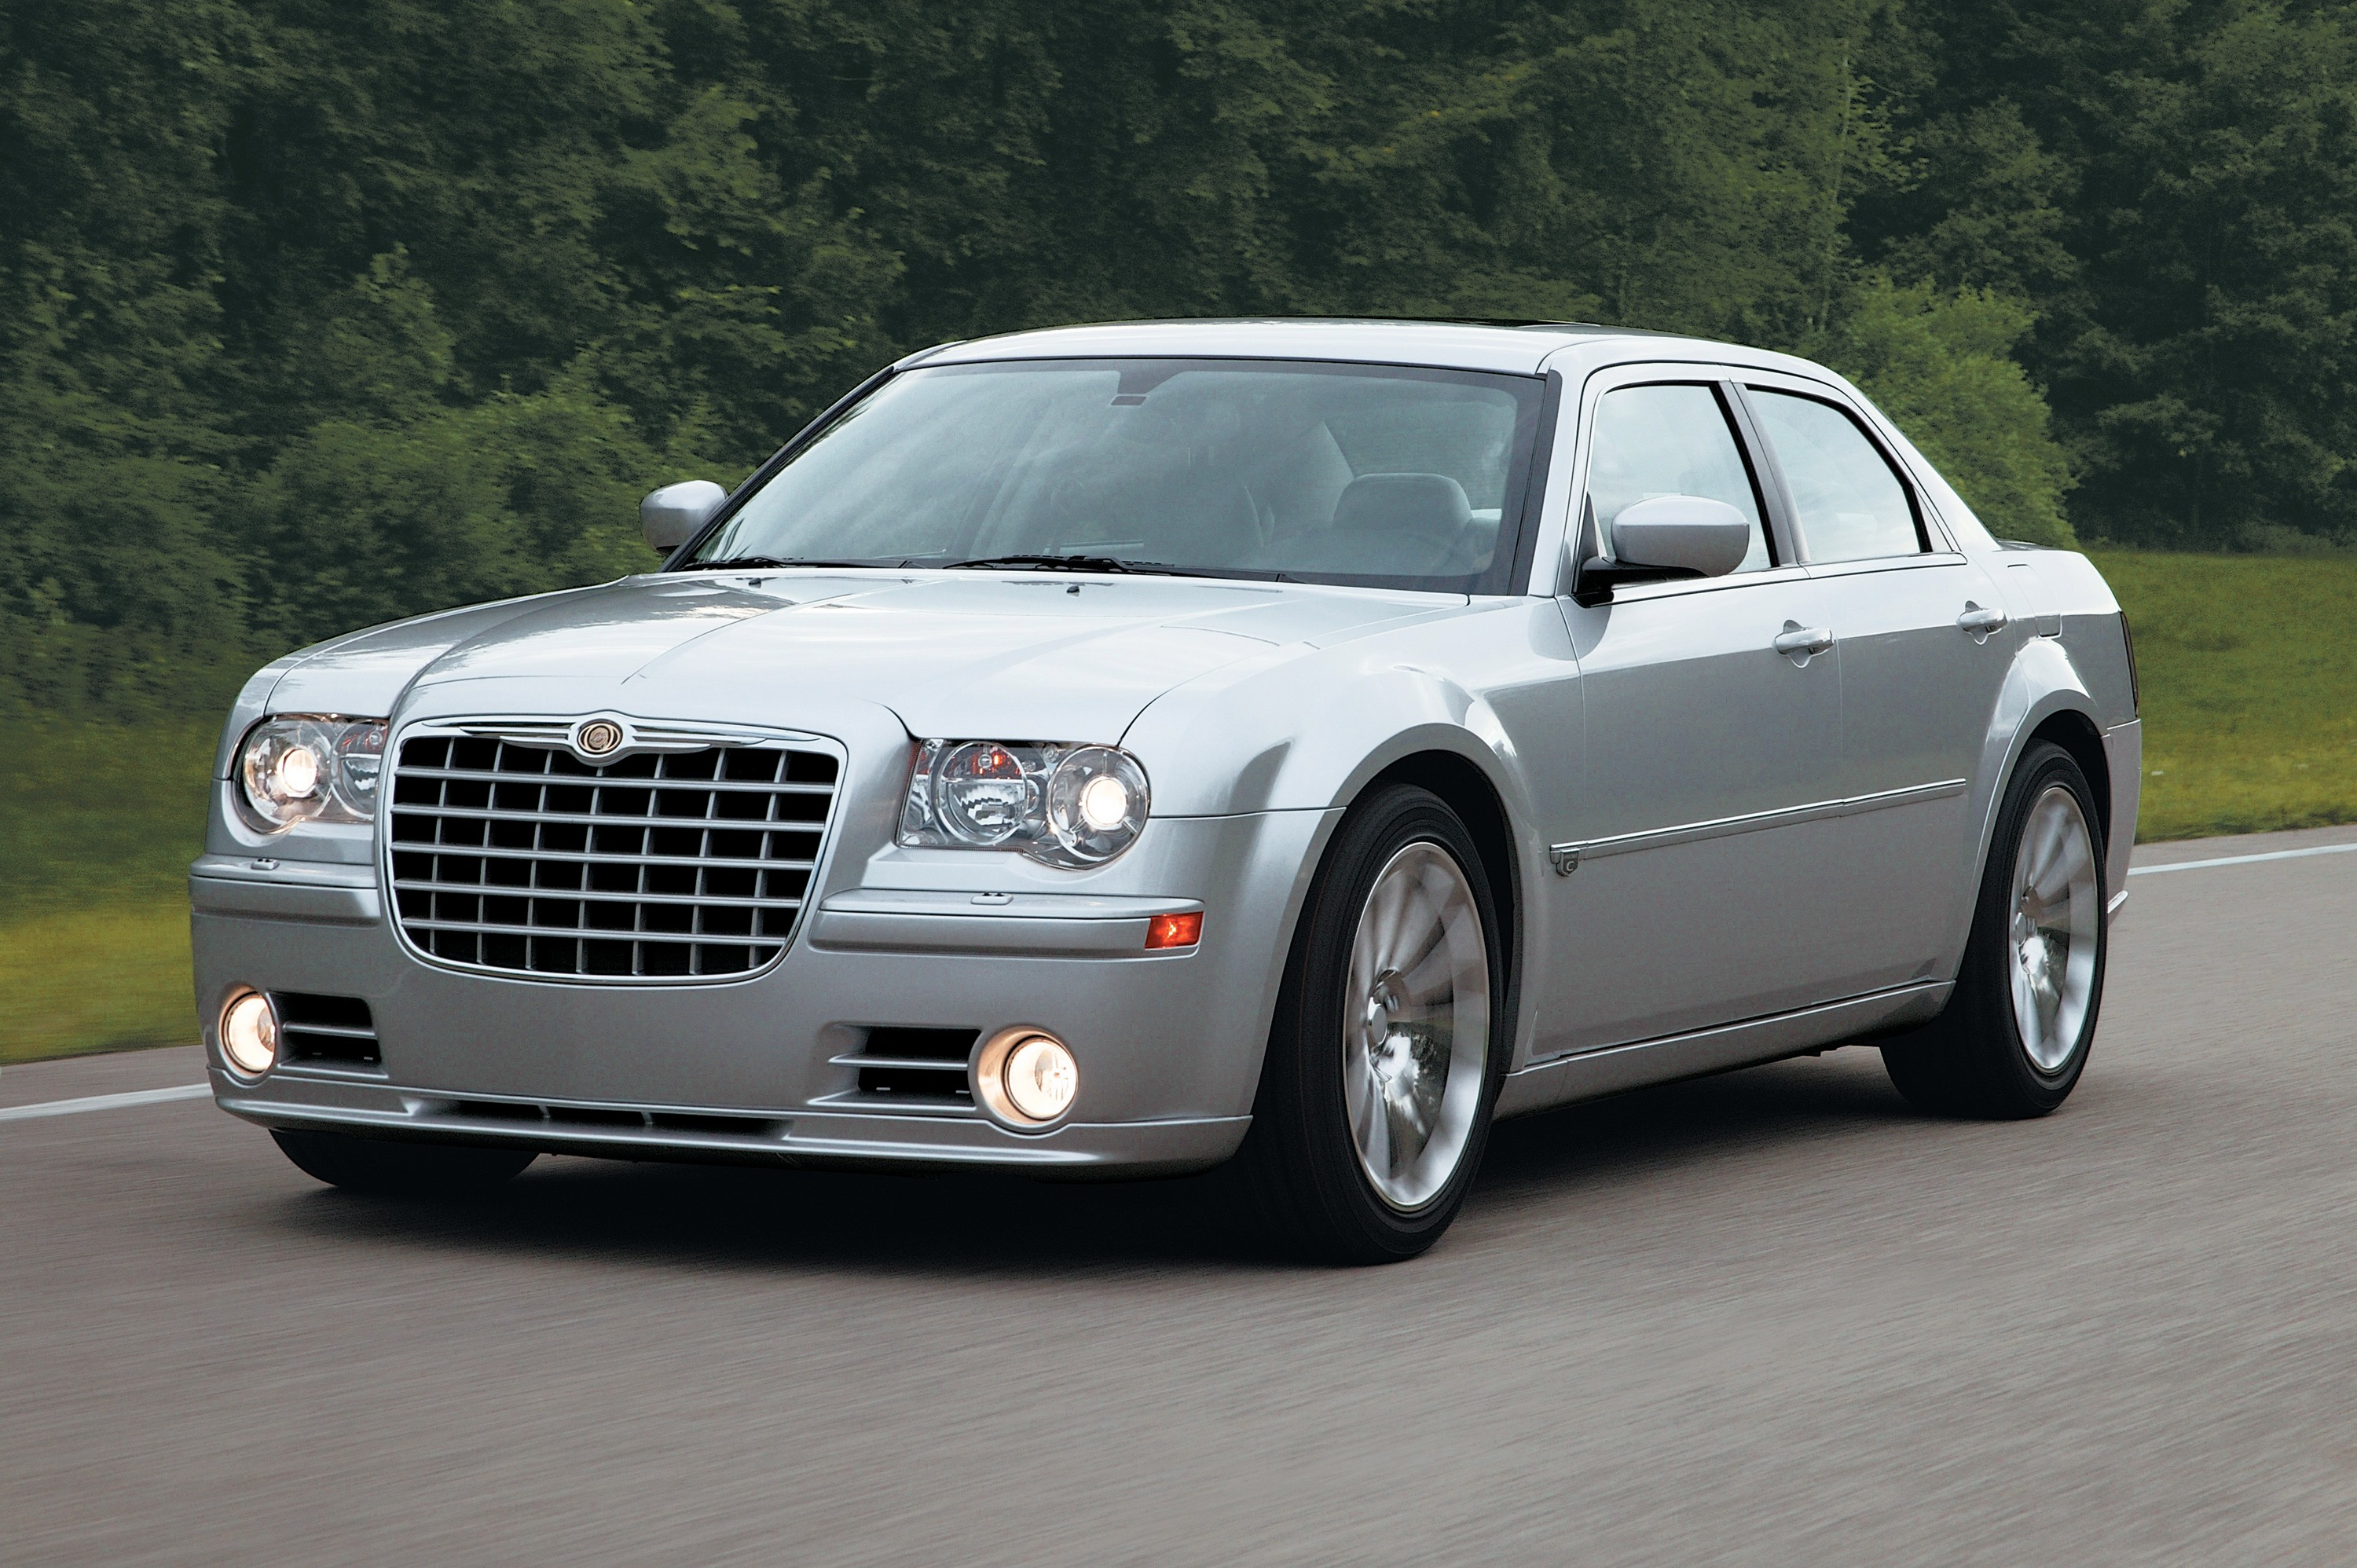 Chrysler 300C SRT8 I 2004 - 2010 Sedan #6